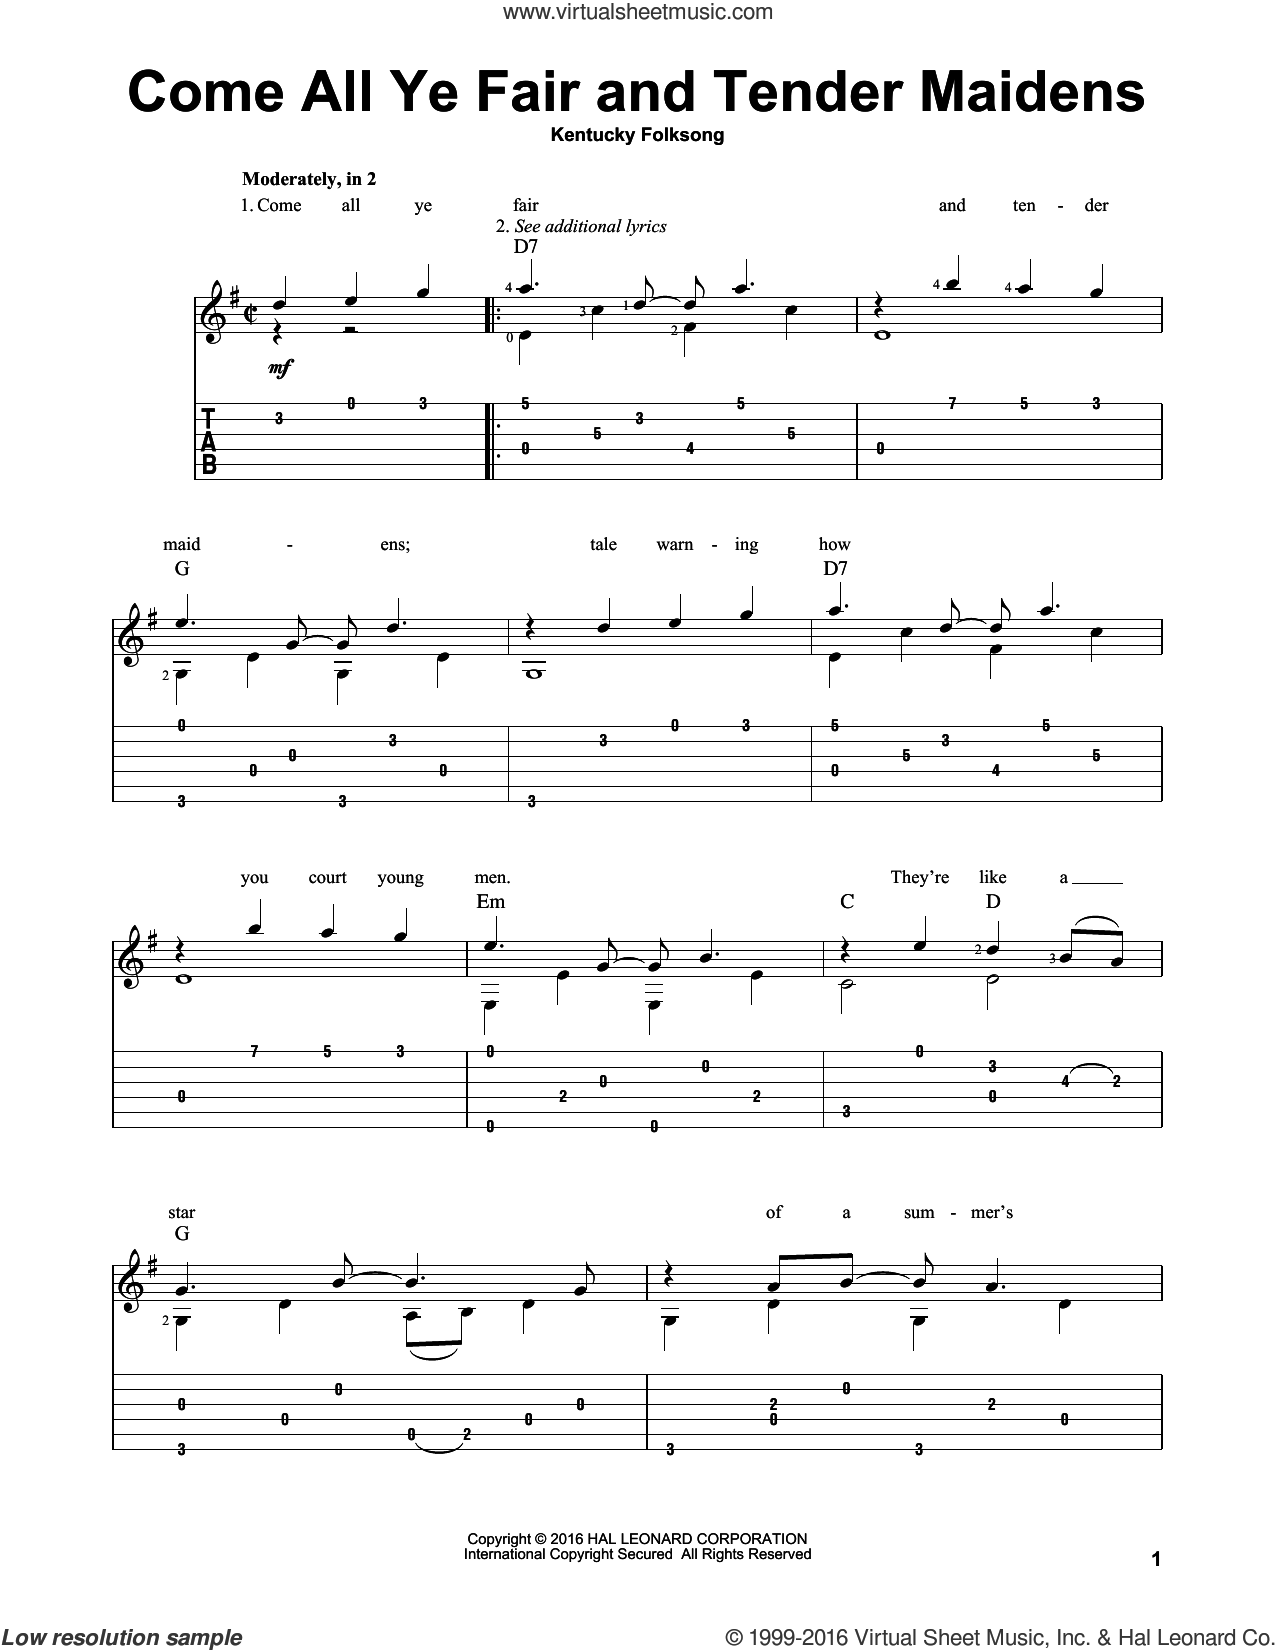 Come All Ye Fair And Tender Maidens sheet music for guitar solo by Kentucky Folksong. Score Image Preview.